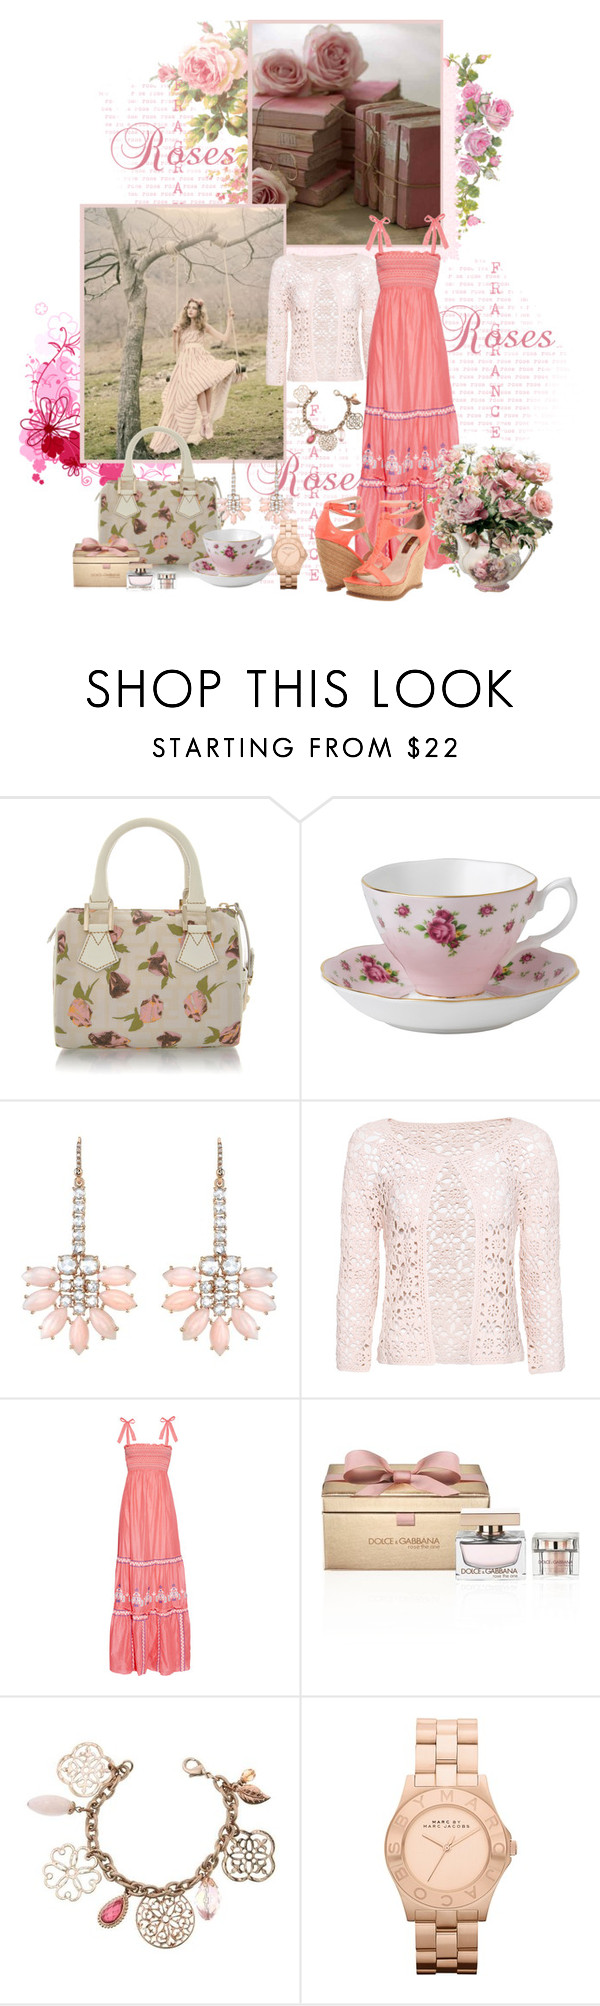 """""""Charming Pink Roses"""" by mrstom ❤ liked on Polyvore featuring SELINA, Fendi, Royal Doulton, Irene Neuwirth, MANGO, Alice by Temperley, Dolce&Gabbana, 1928, Marc by Marc Jacobs and 7 For All Mankind"""